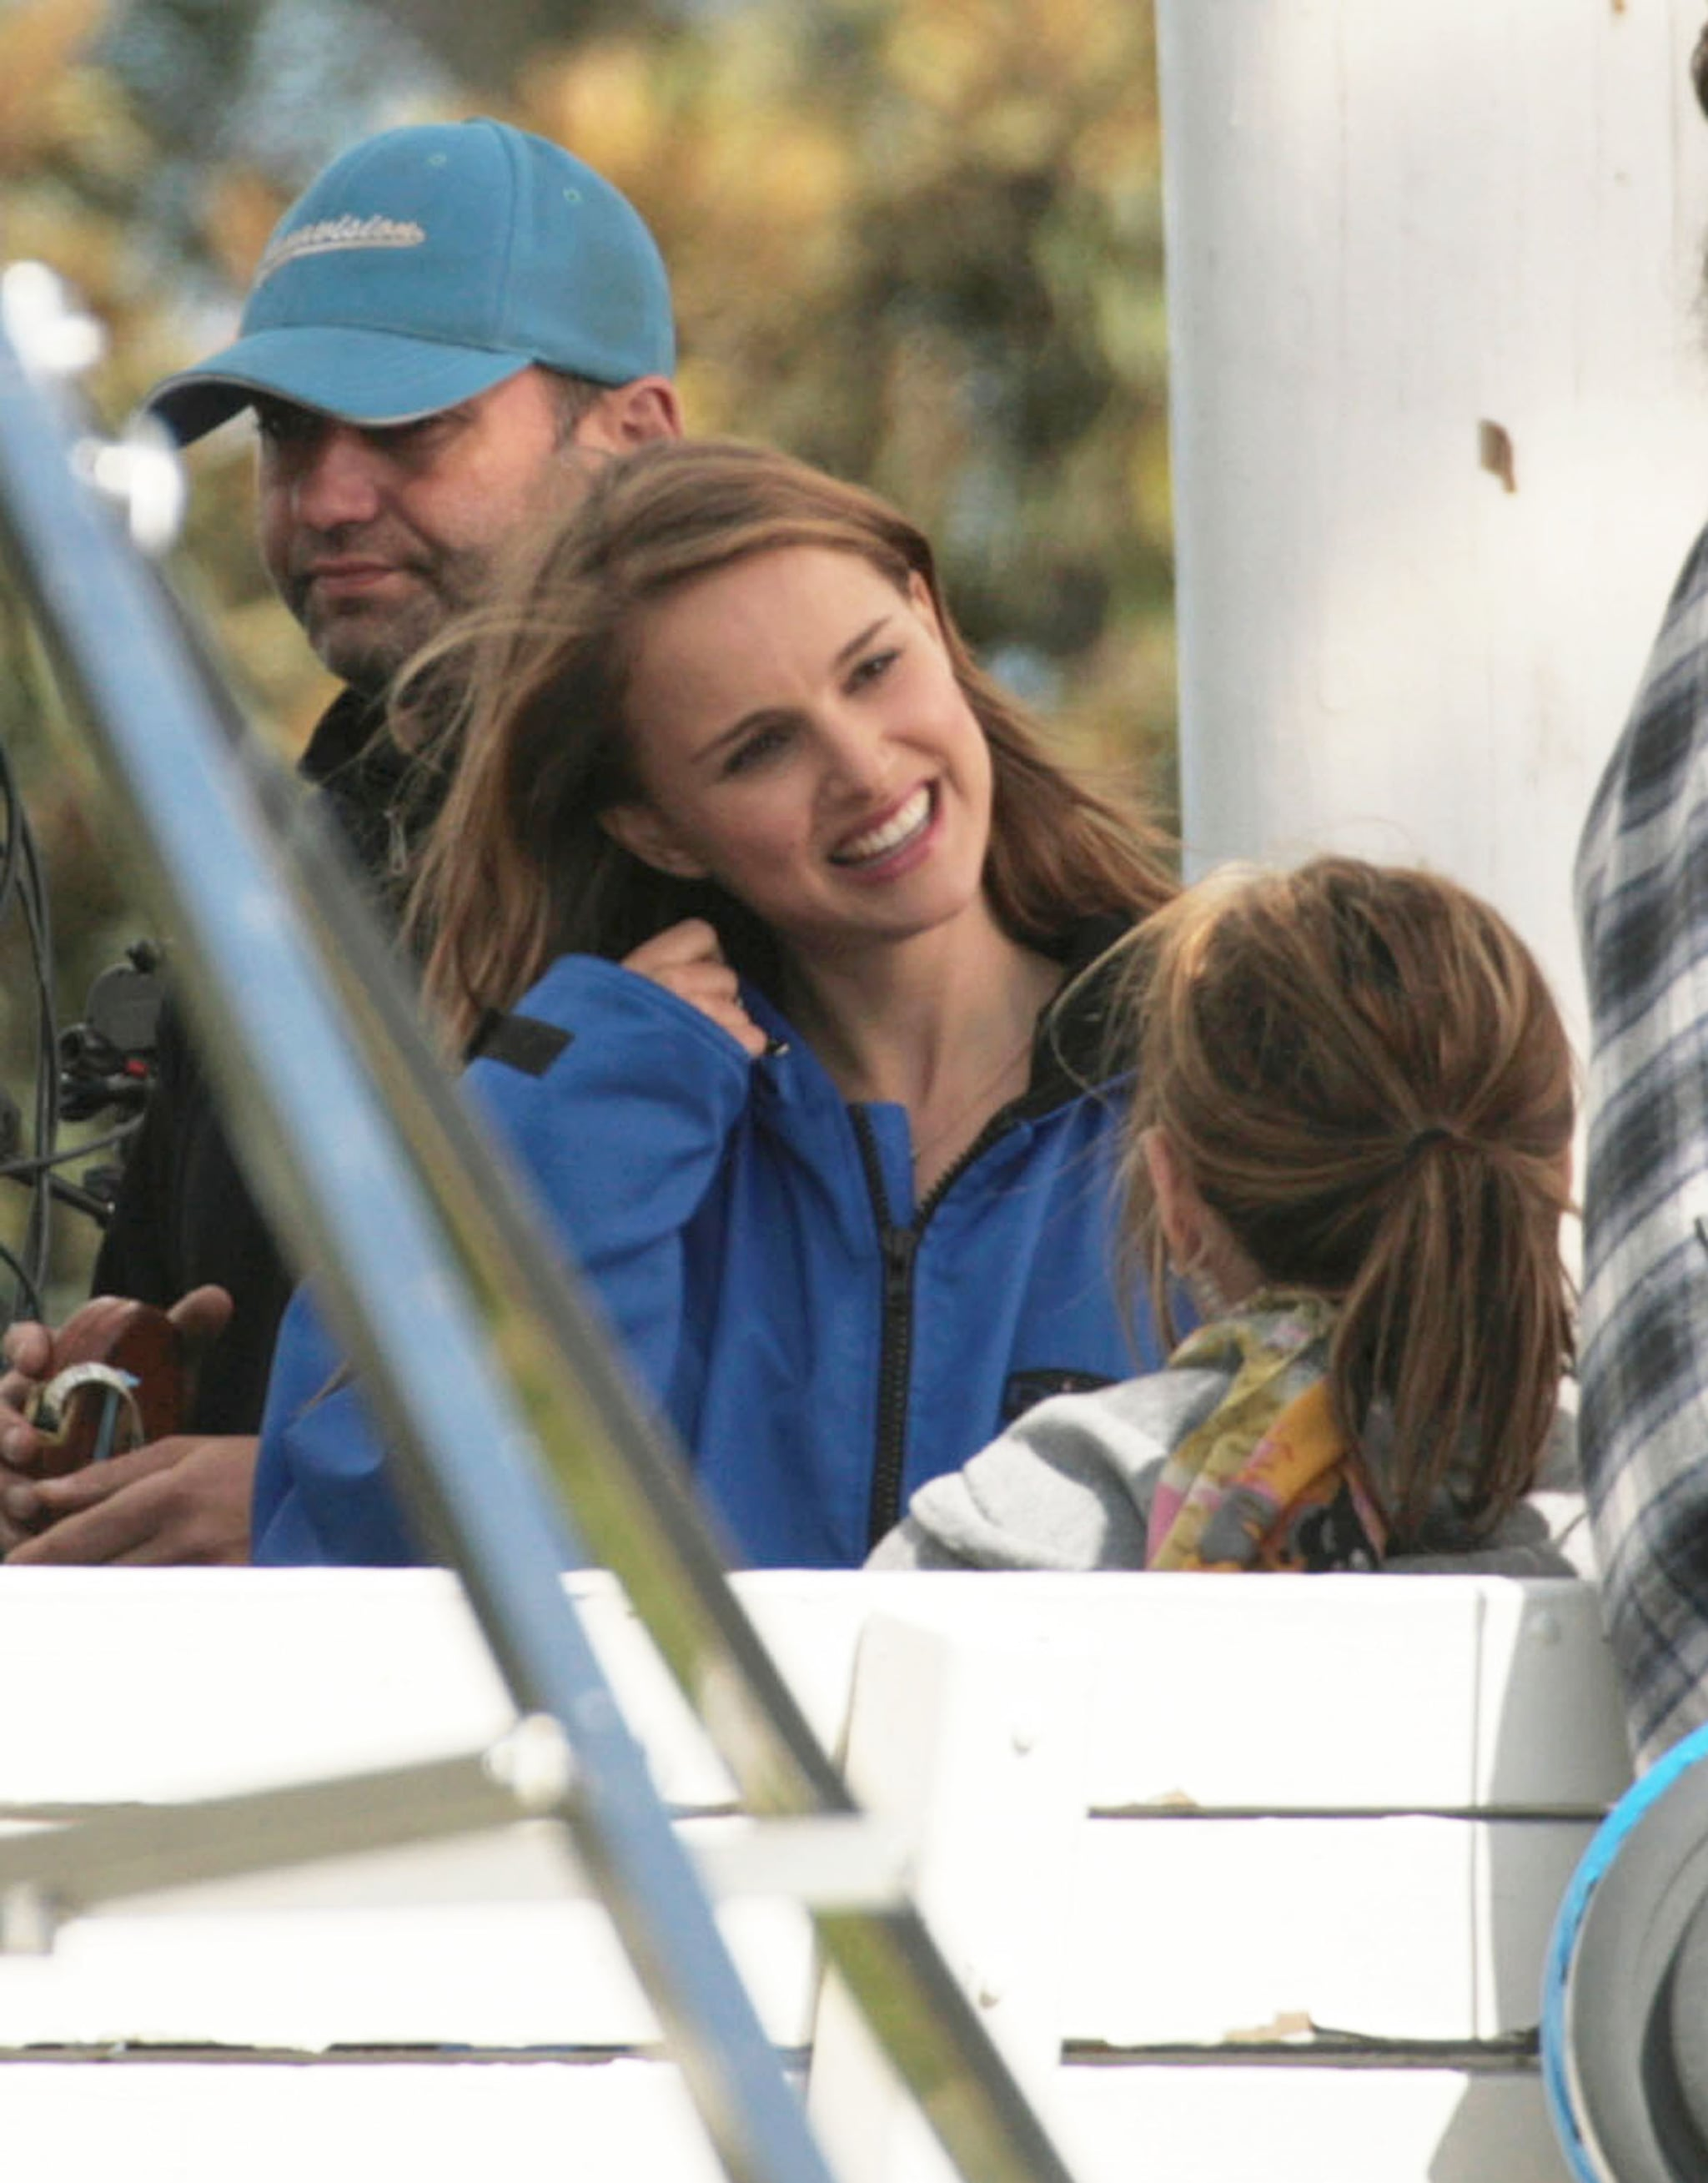 pictures of natalie portman and ashton kutcher kissing on